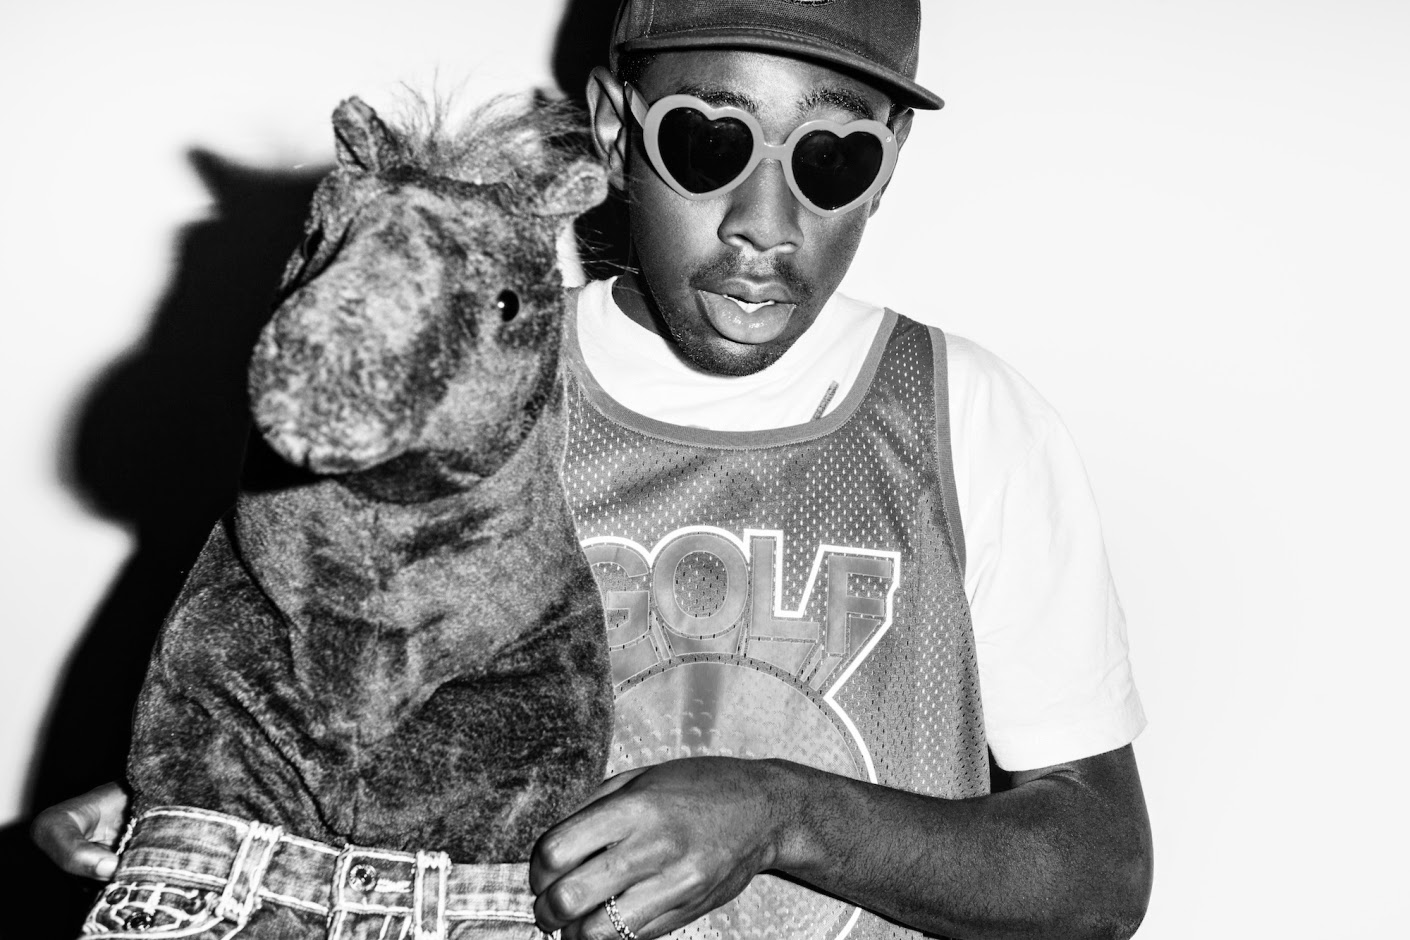 Tyler The Creator Quotes Youth  Youth Radio Tyler The Creator In All His Glory